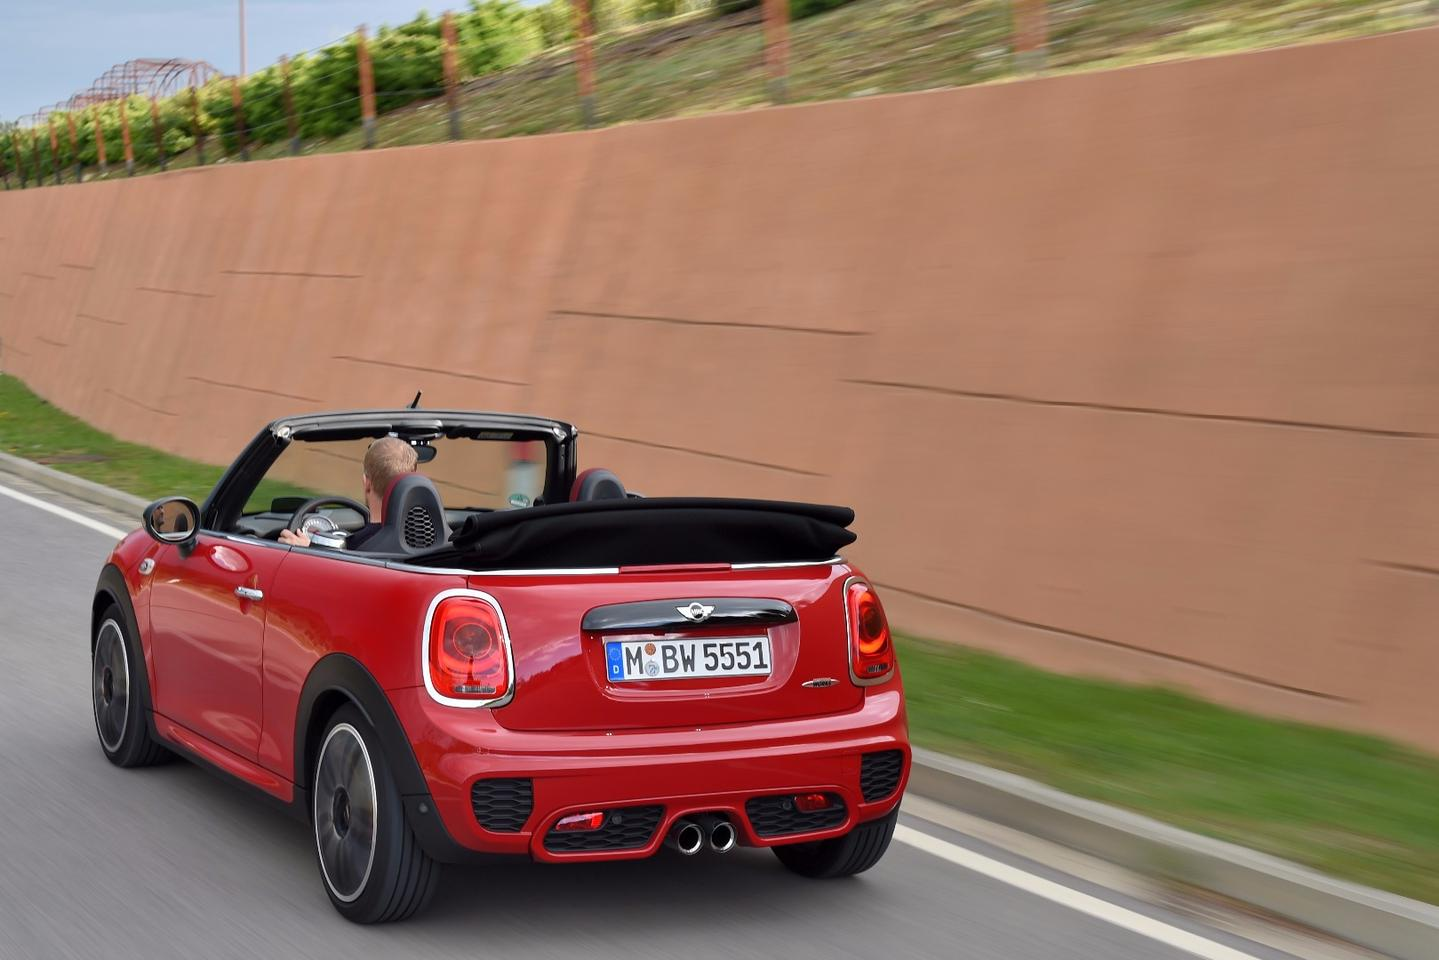 The JCW Convertible will hit 100 km/h in 6.6 seconds